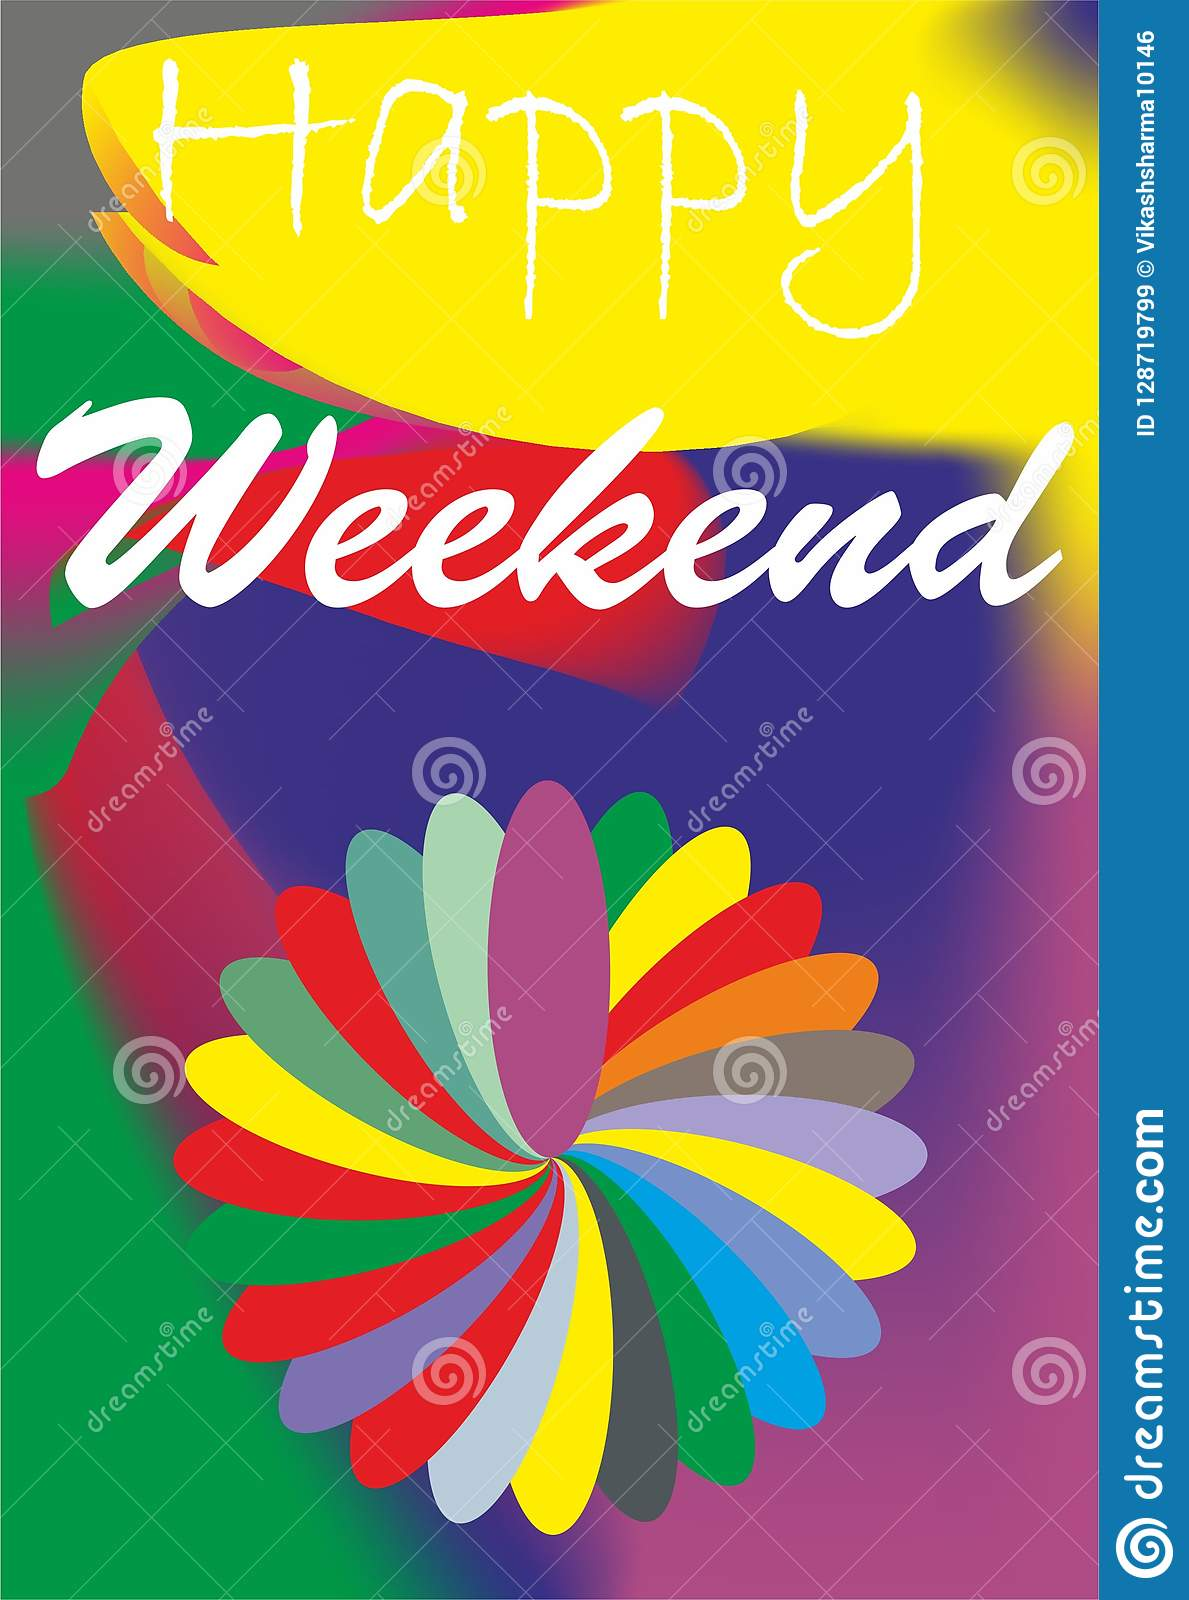 weekend design wishes quotes happy weekend stock illustration